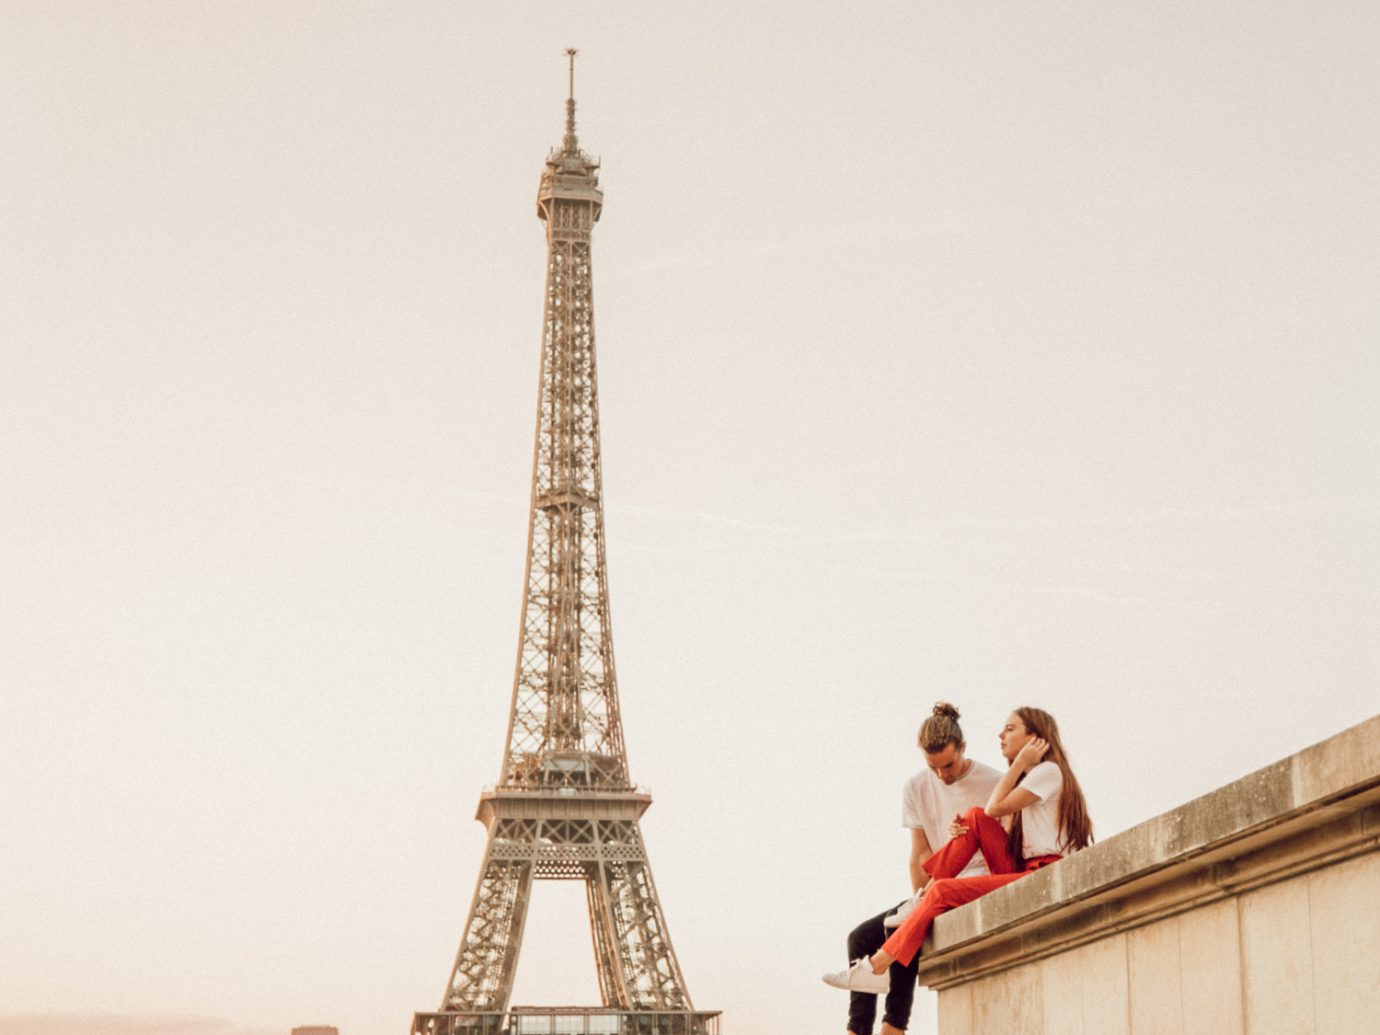 Couple sitting on a building in front of the Eiffel Tower